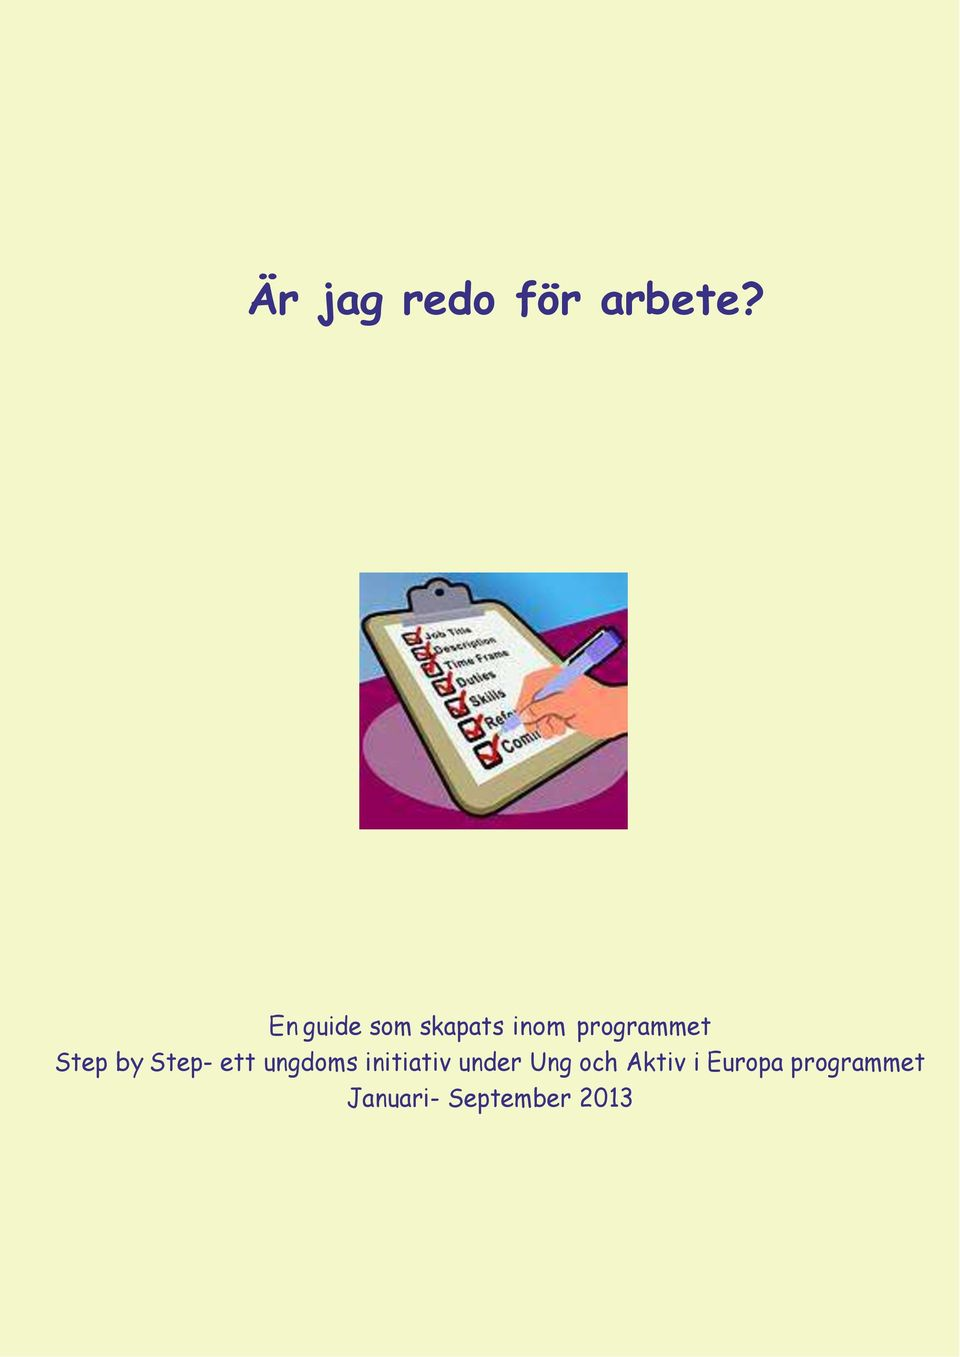 Step by Step- ett ungdoms initiativ